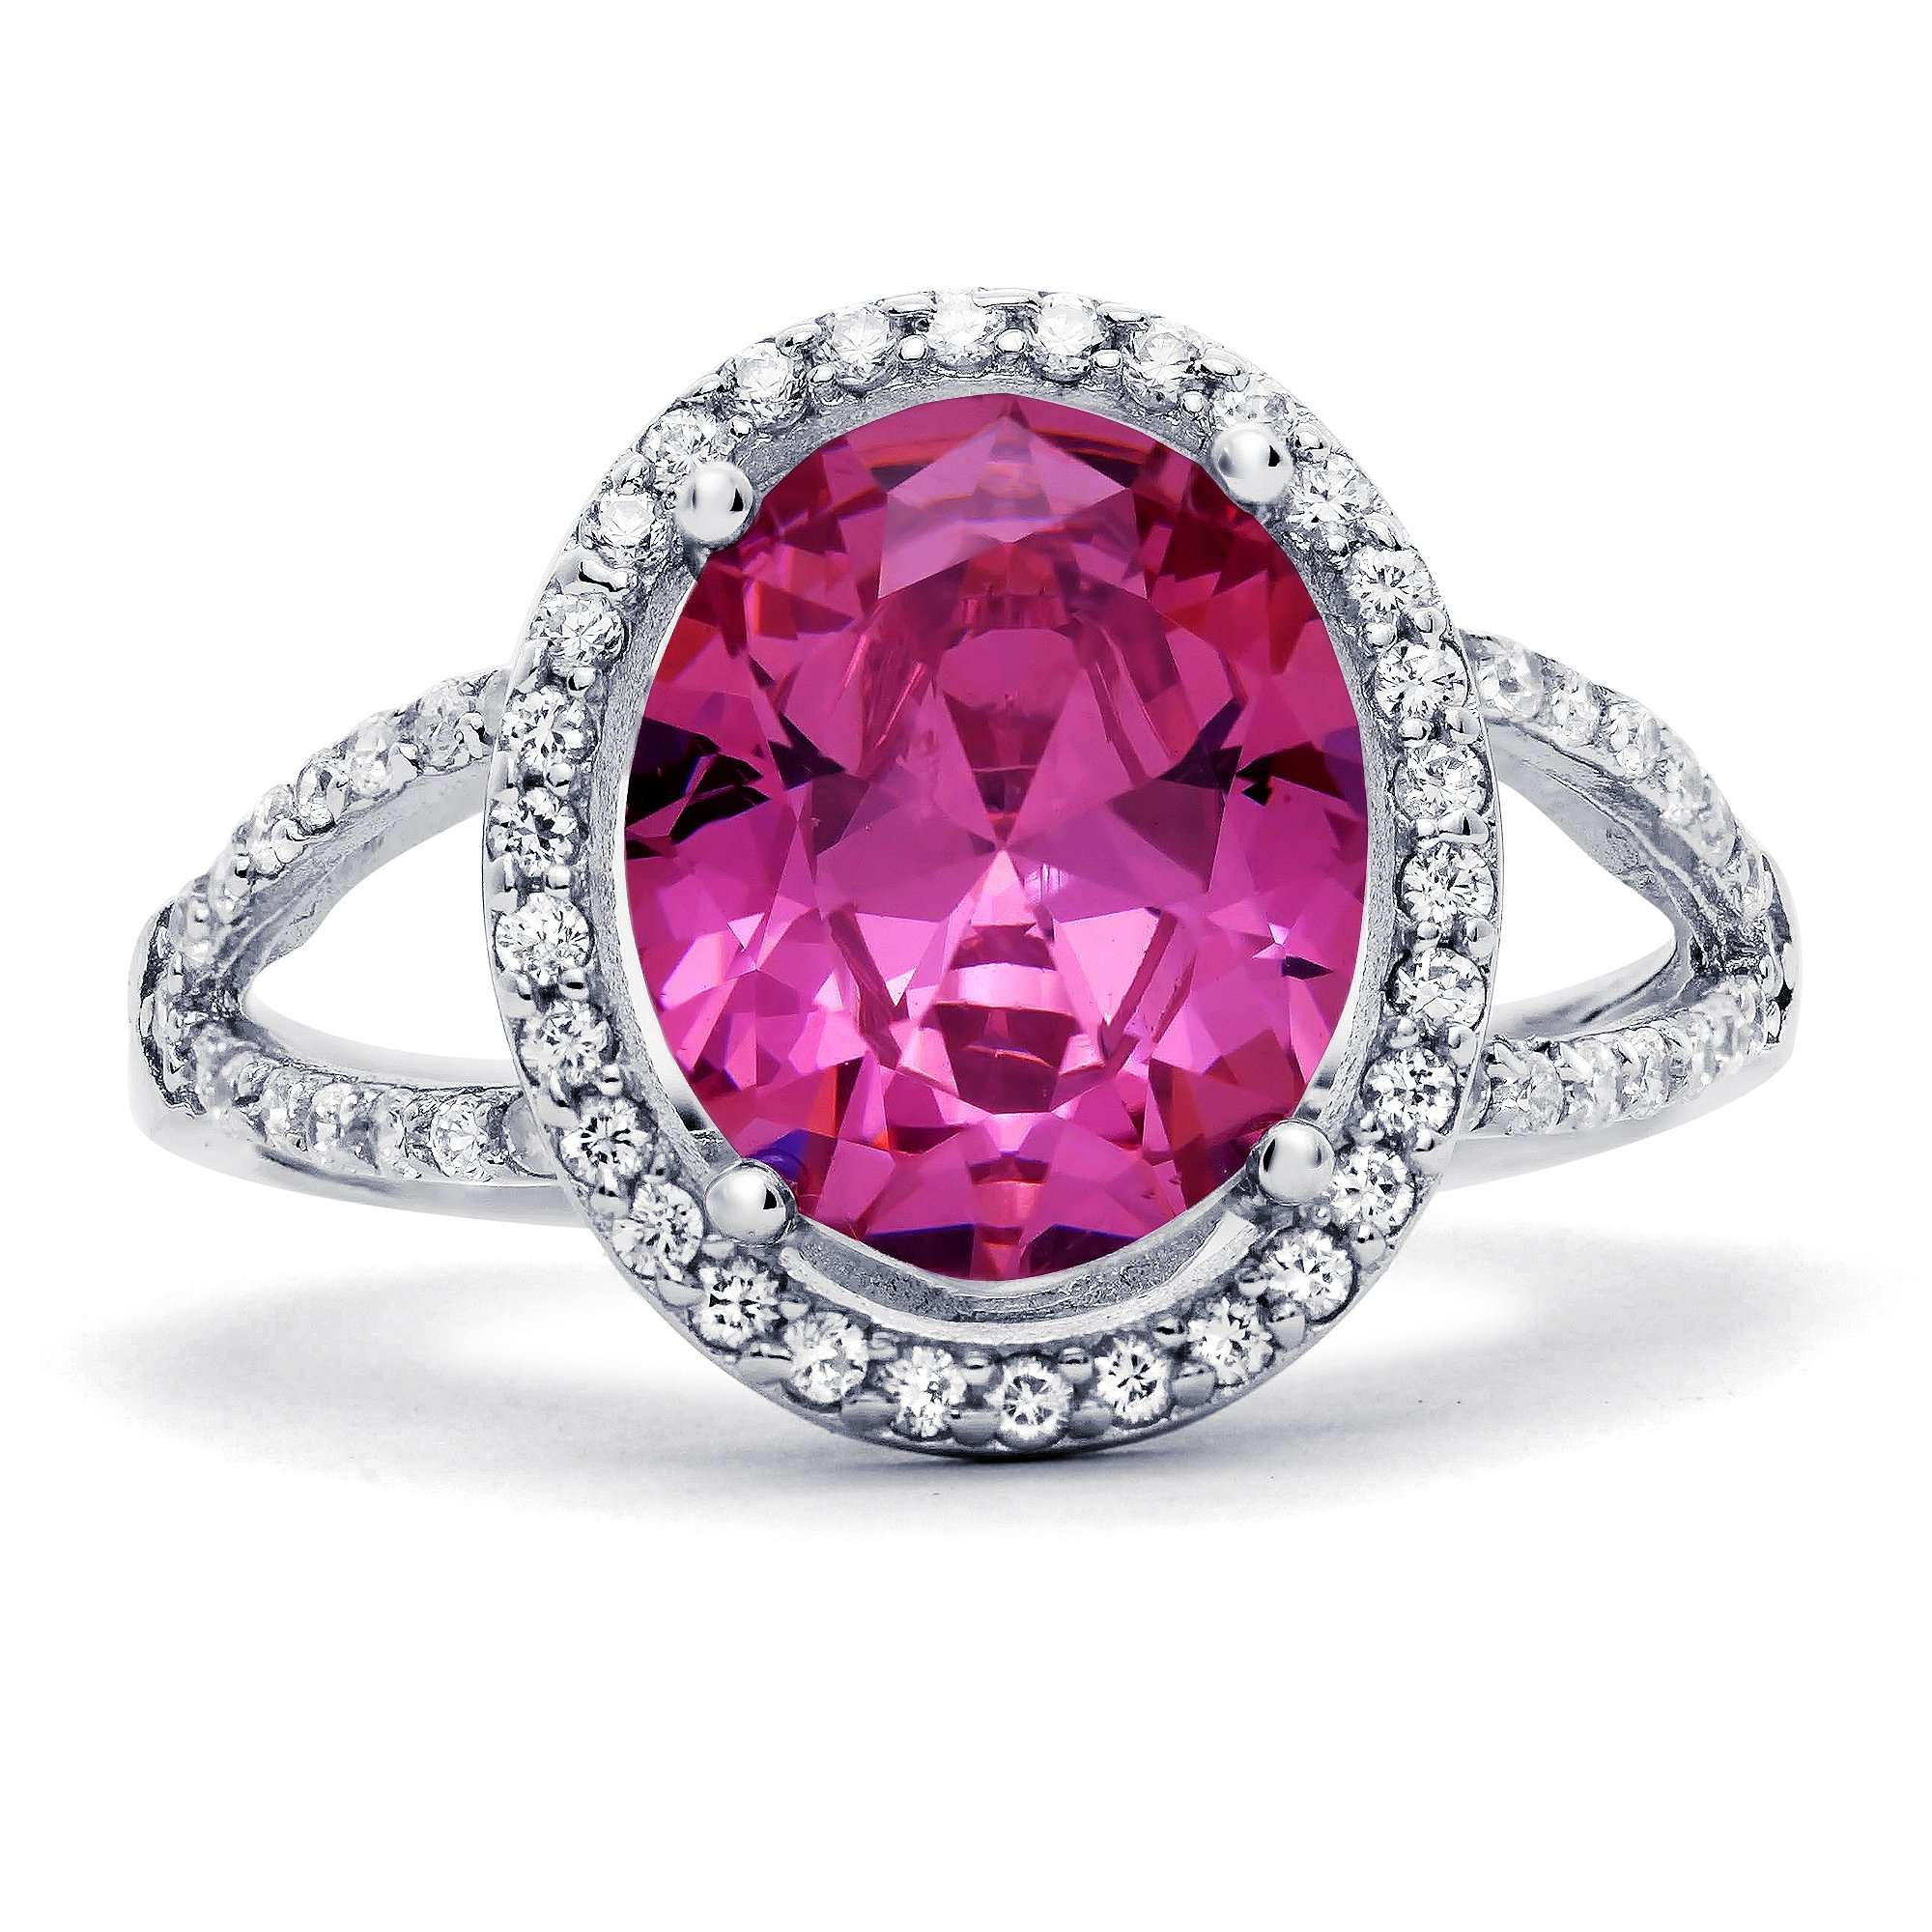 Sterling Silver Oval Simulated Pink Sapphire with Clear Cubic Zirconia Ring, 17mm (7)